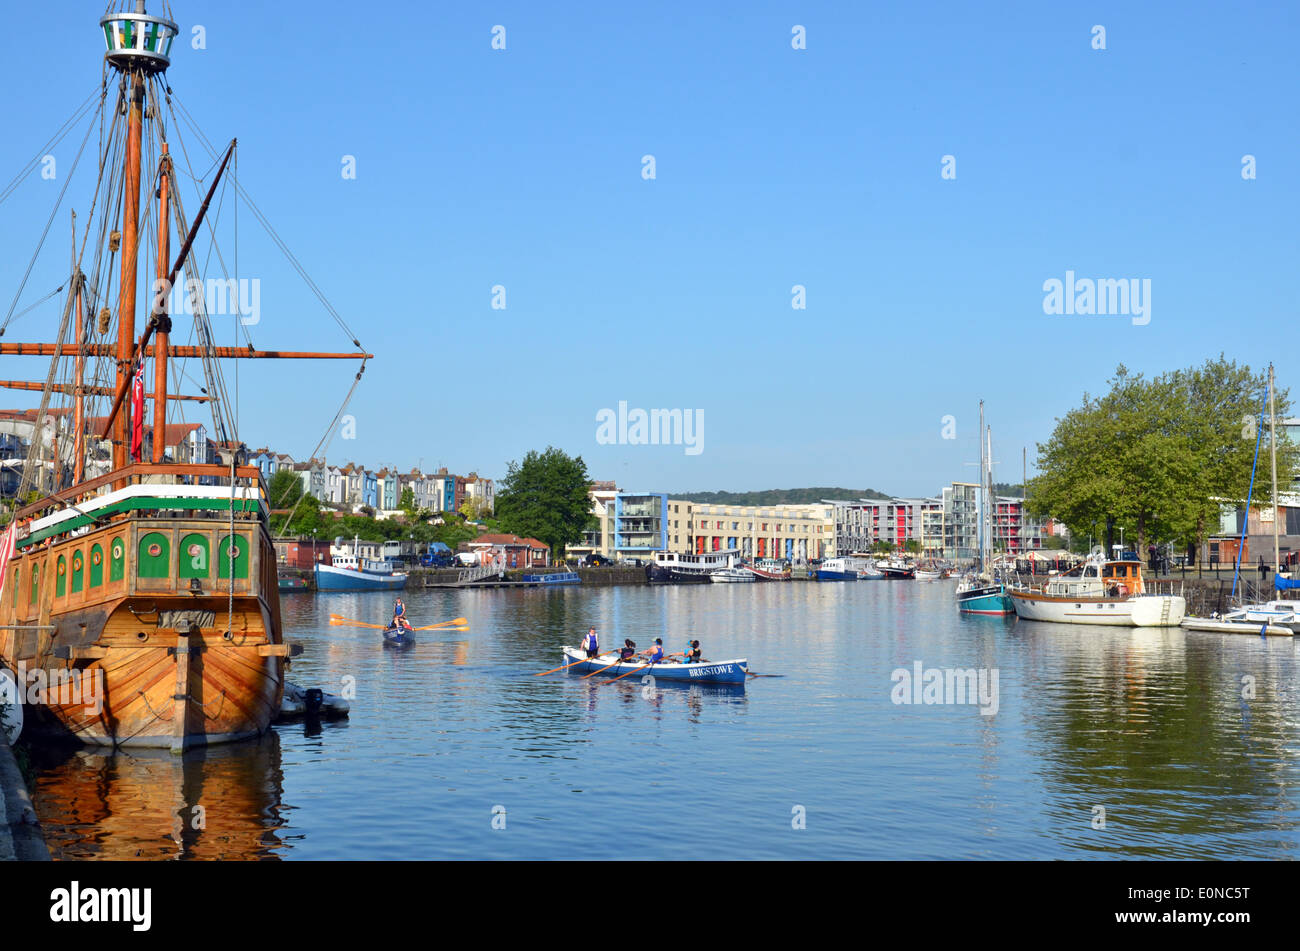 Bristol, UK. 17th May, 2014. Early morning rowers seen next to The Sailing Ship the Matthew in the Floating Harbour in the City of Bristol in the UK ,as the sun rises to a wonderfull day ahead. Forecasters are predicting warm and sunny weather for the weekend. Credit:  Robert Timoney/Alamy Live News - Stock Image